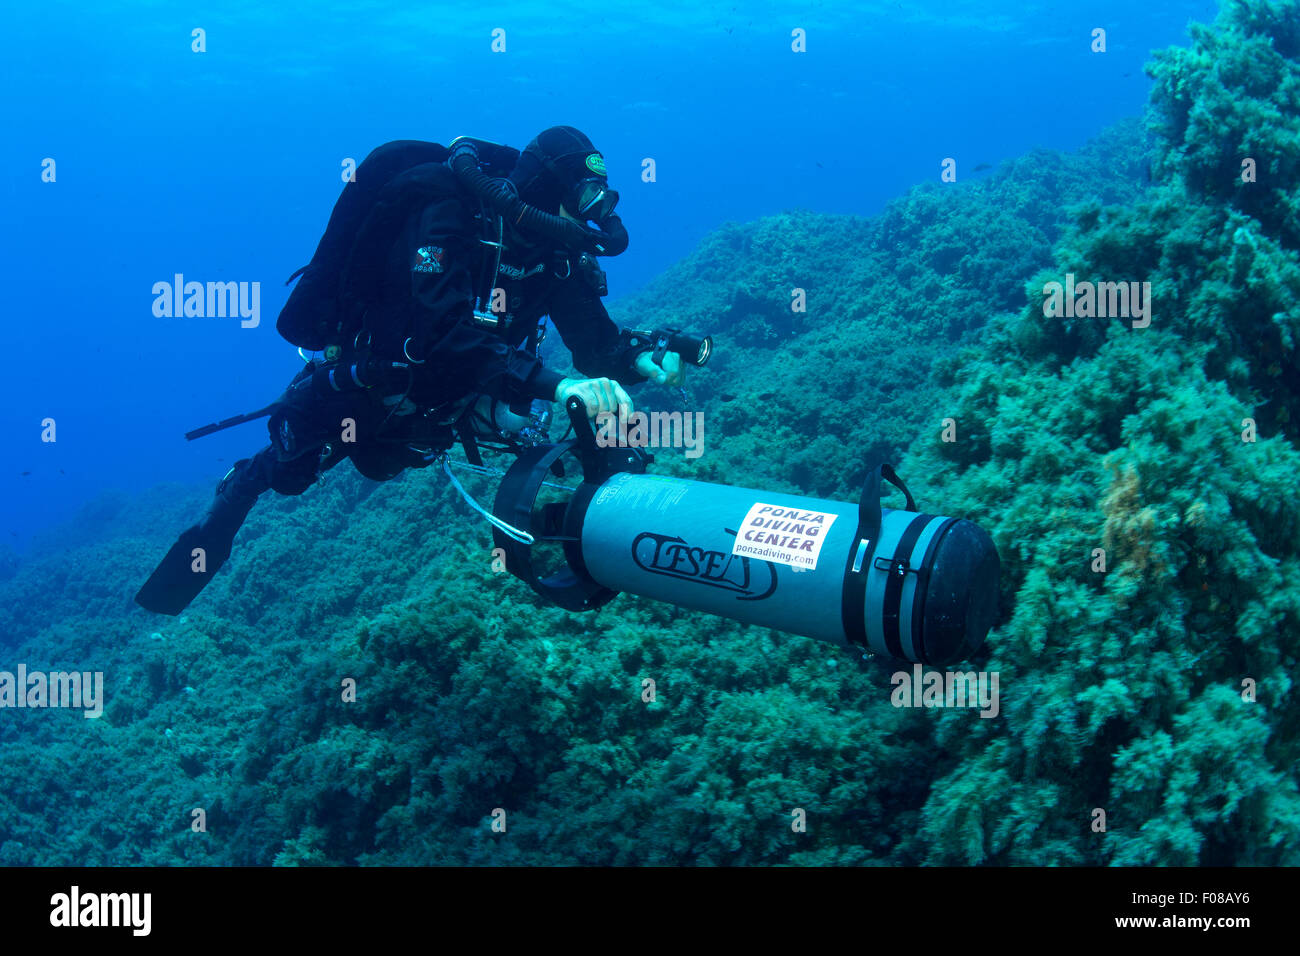 Rebreather Diver with Scooter, Ponza, Italy - Stock Image